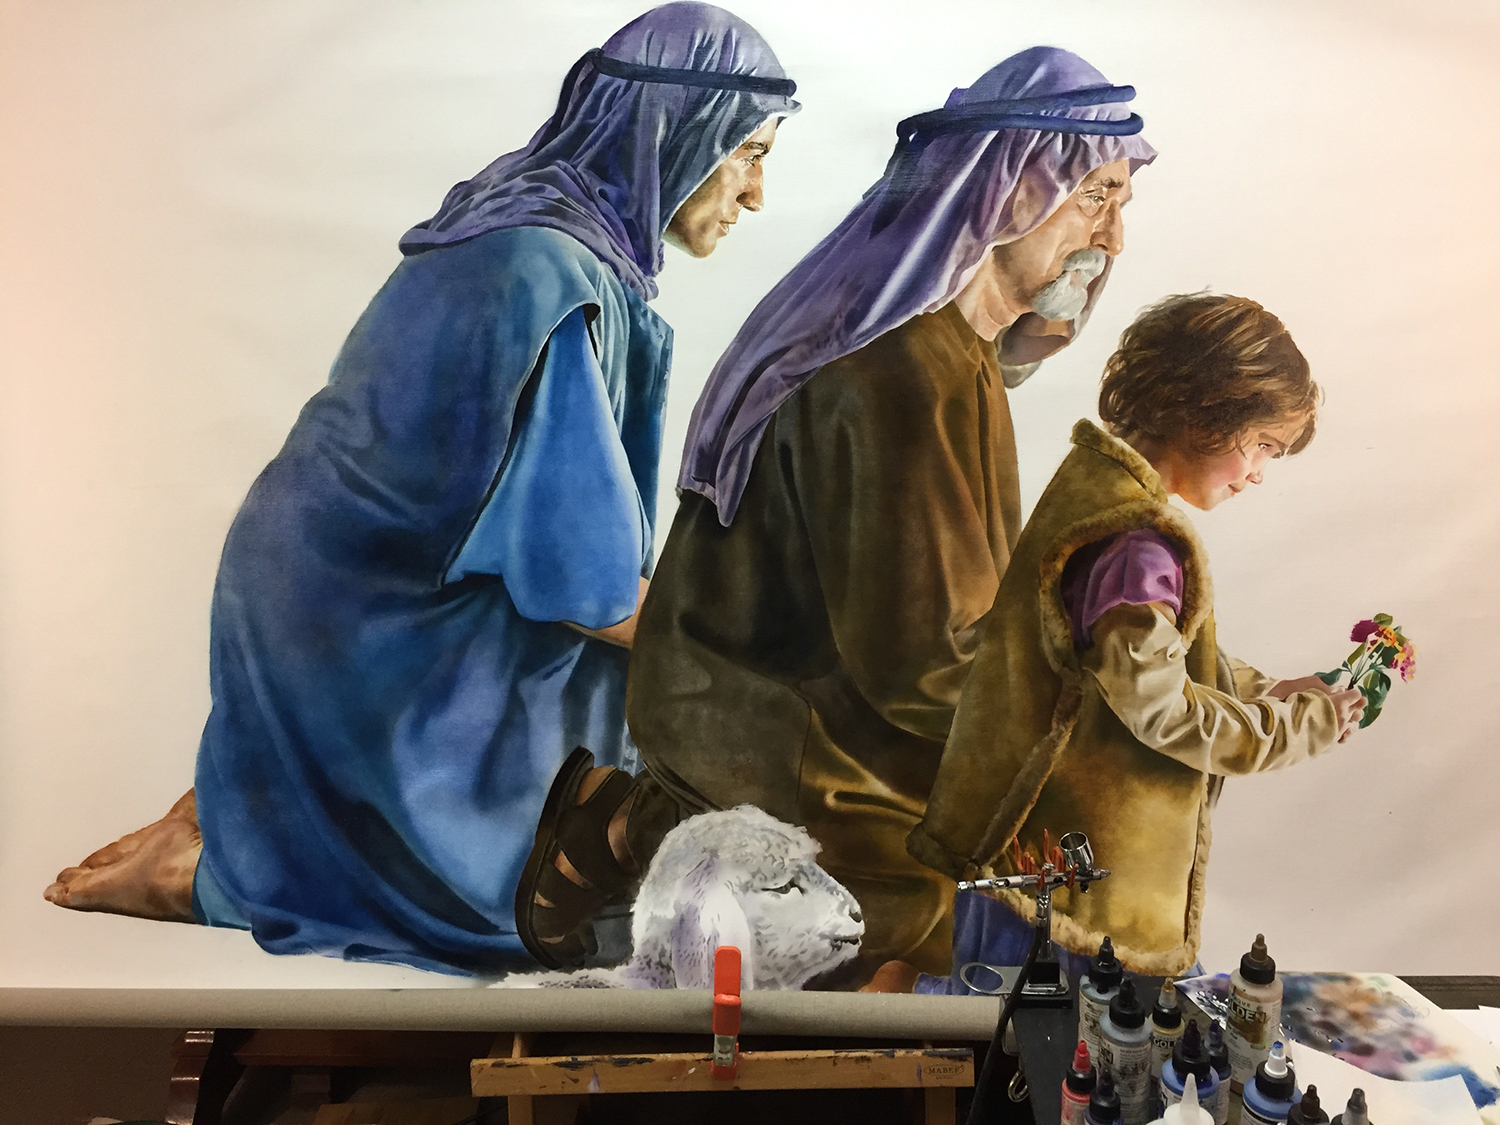 Figure 12: The three shepherds, finished, with the head of the lamb just begun. In the foreground is the airbrush, used to apply the acrylic underpainting.